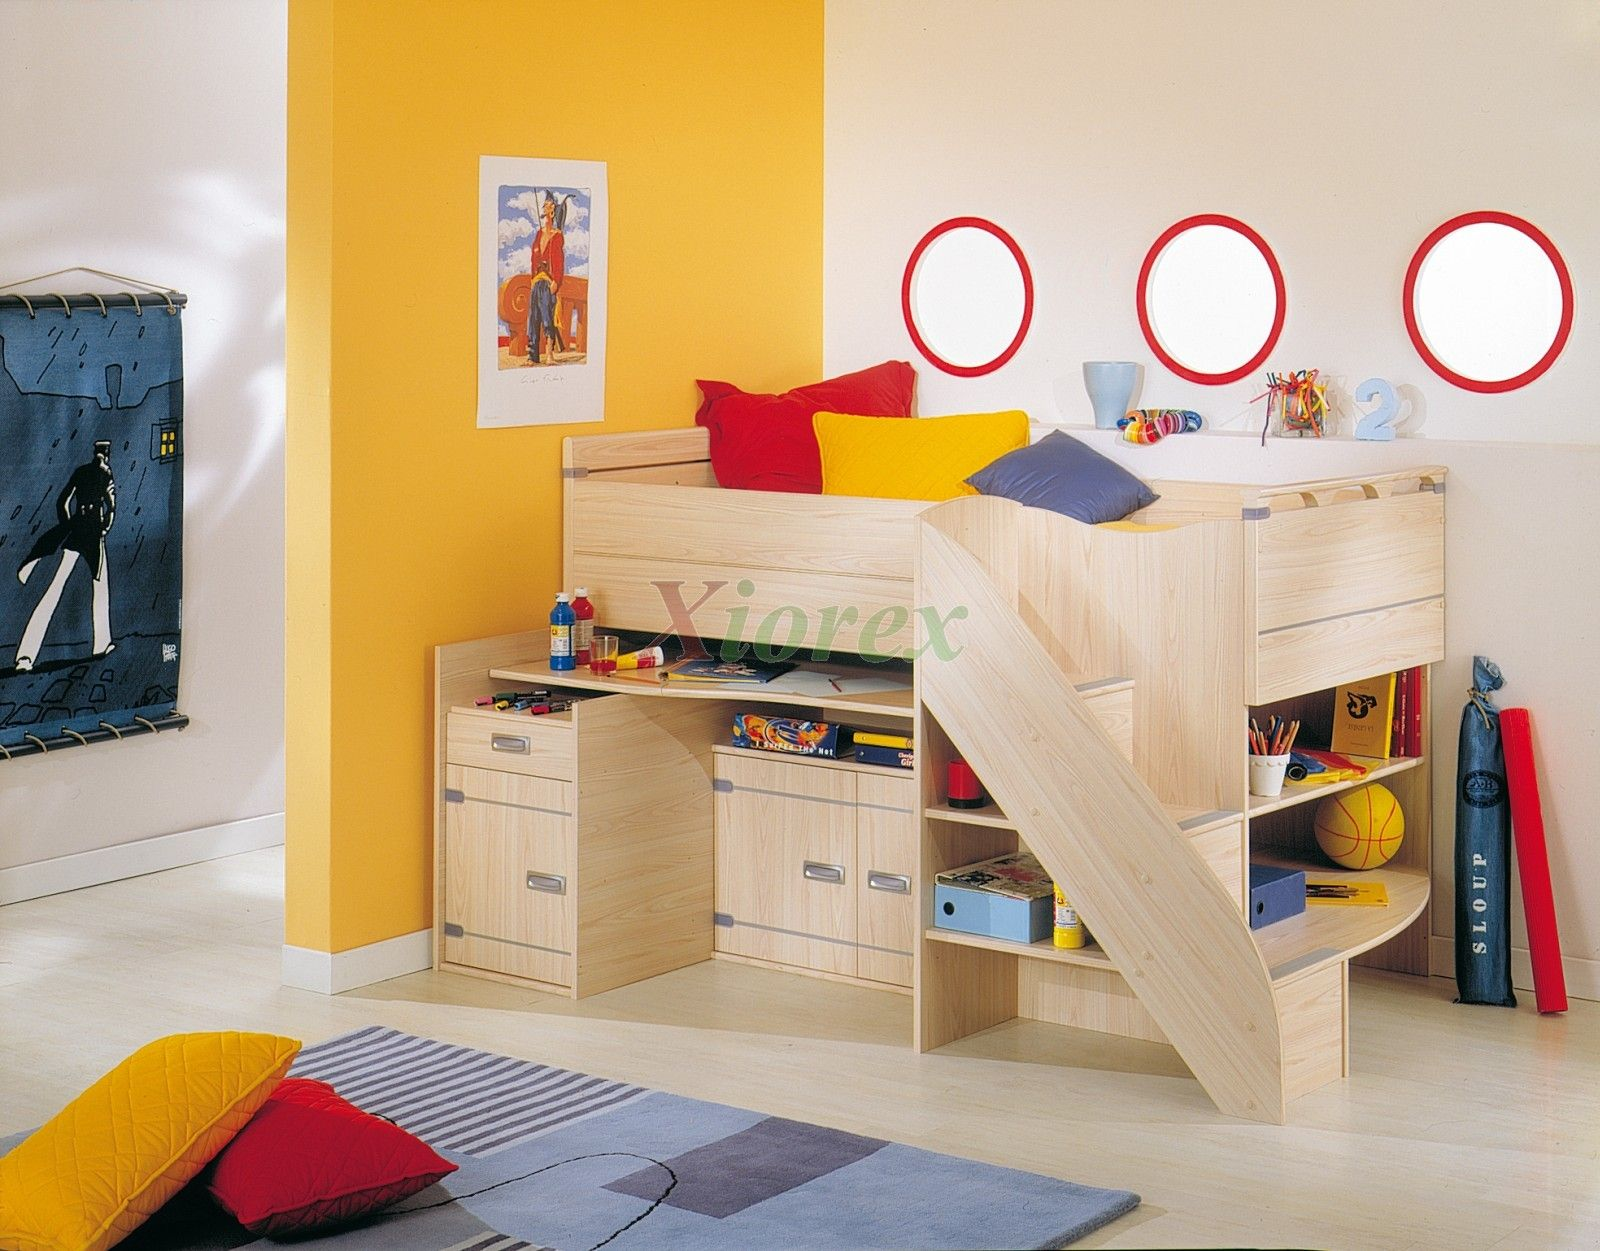 Cabin Beds For Small Rooms Cabin Bed Compact Gami Skipper Compact Cabin Bedgautier Xiorex